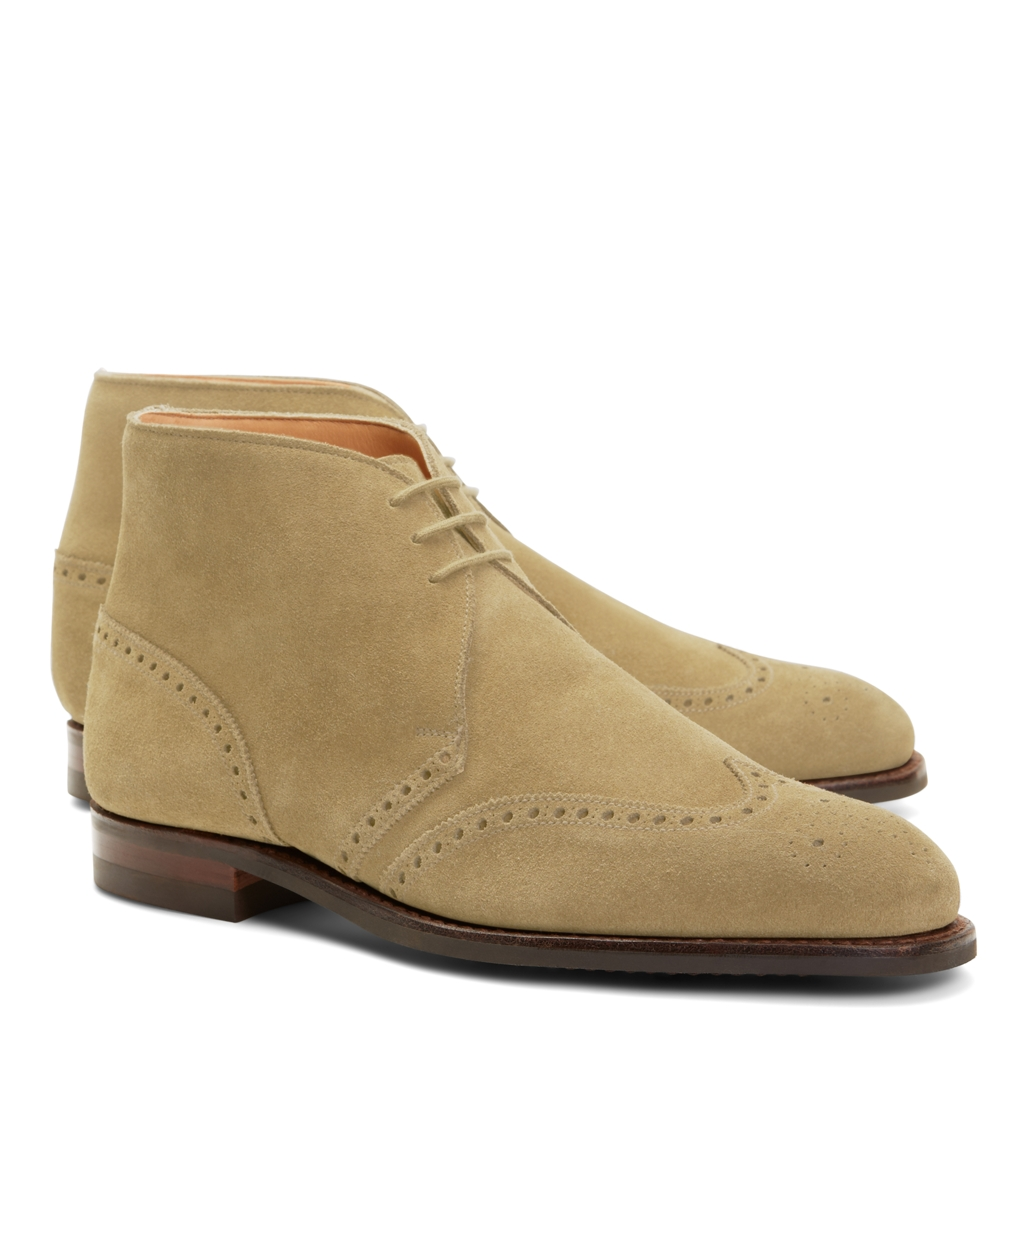 Brooks Brothers Men's Peal & Co. Suede Wingtip Boots